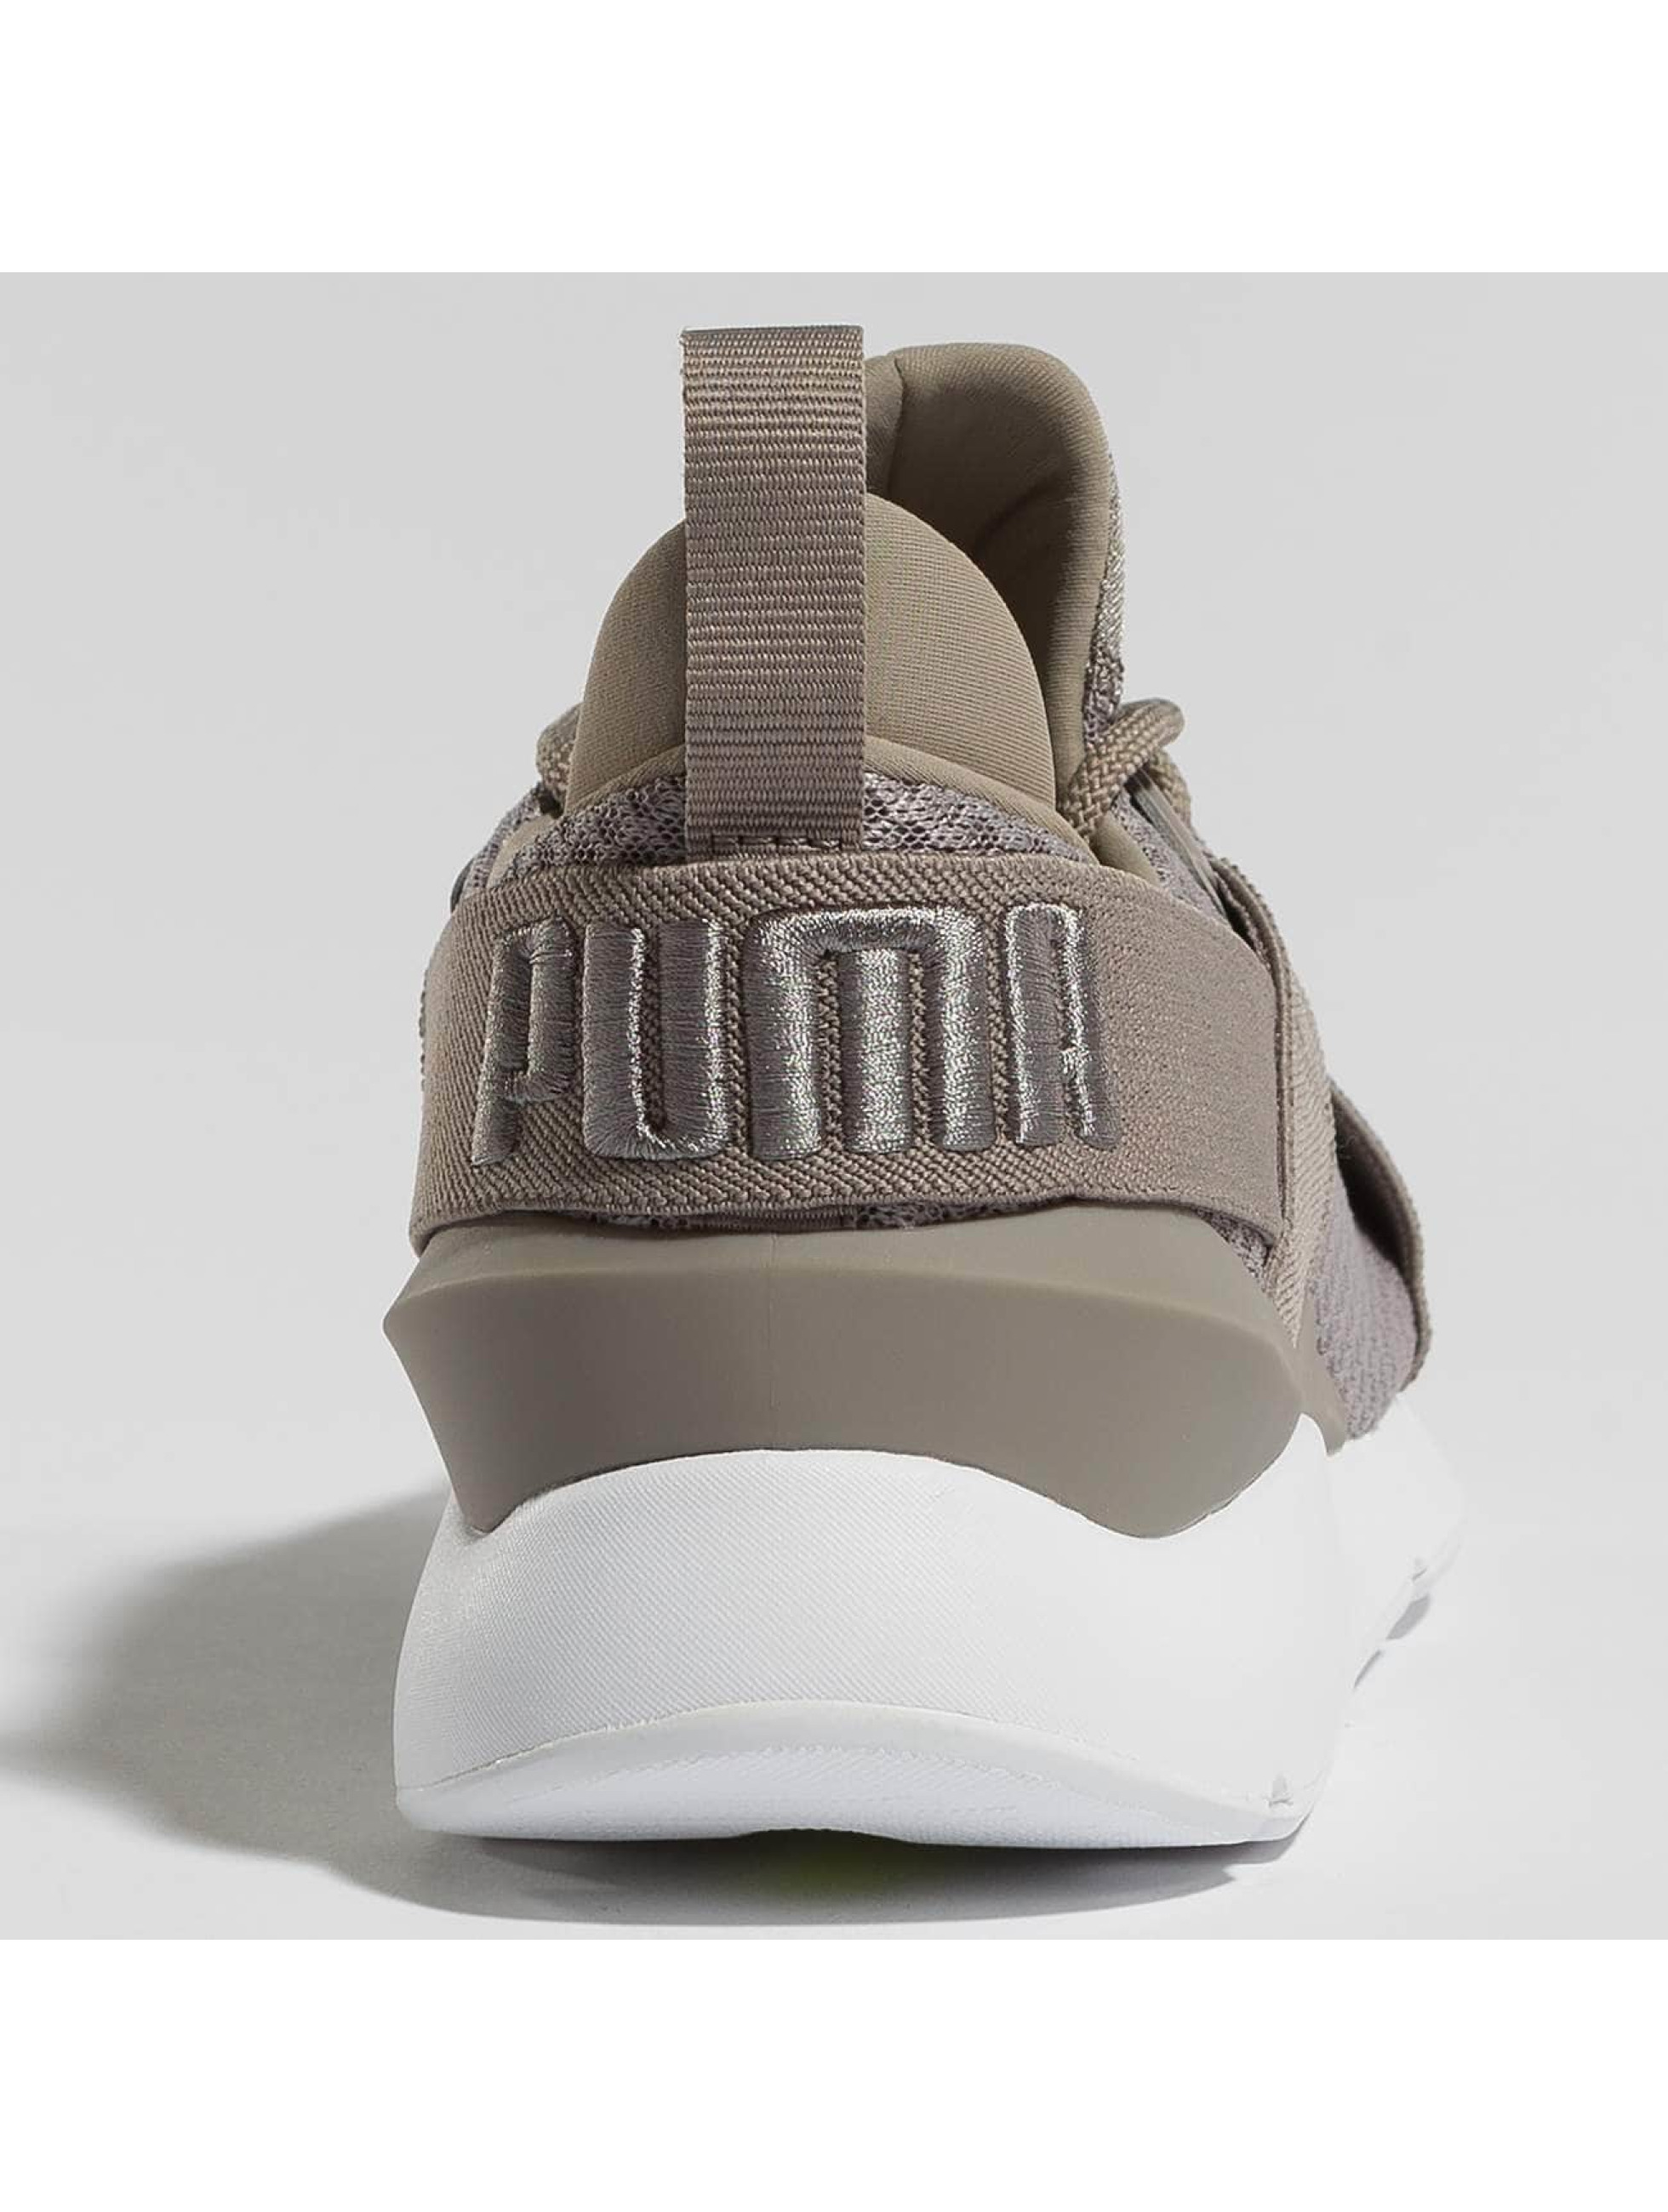 Puma Sneakers Muse EP brown